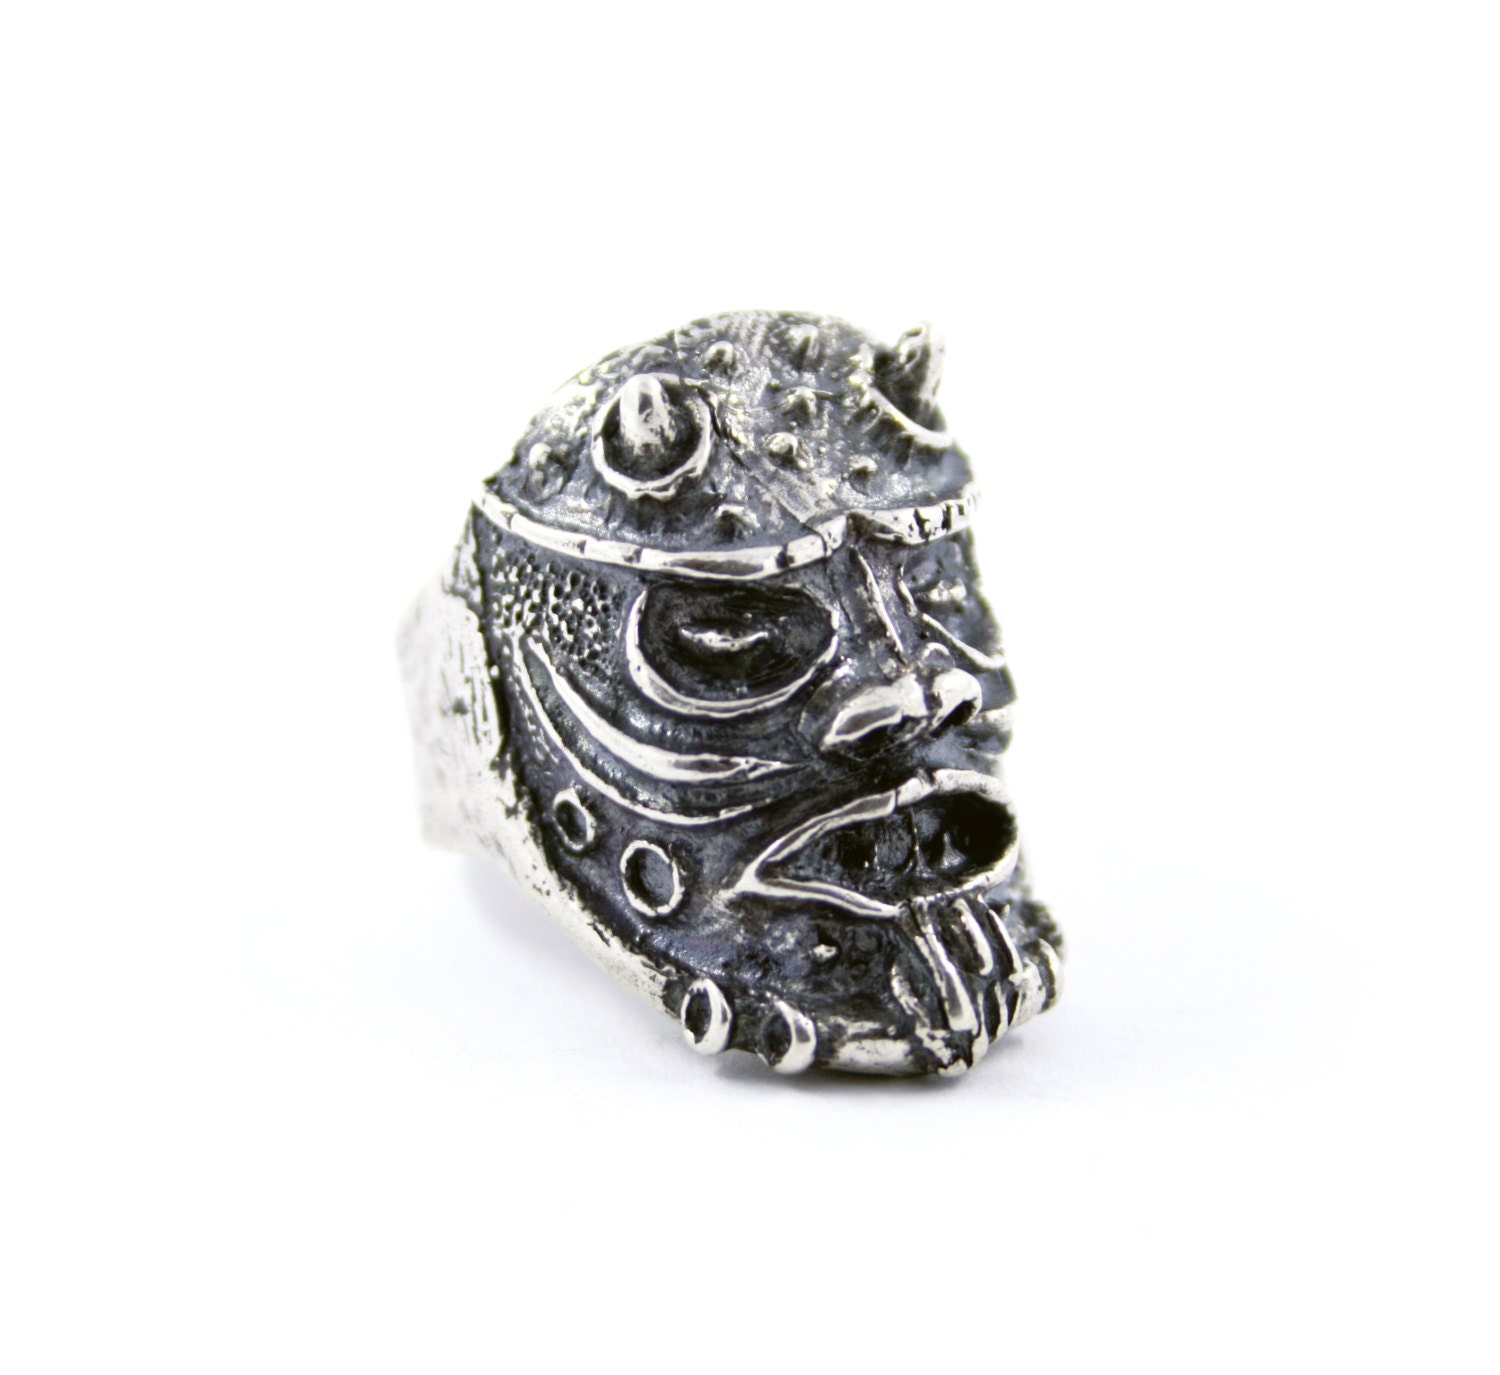 w artwork apag design january rings diver clearance navy ring